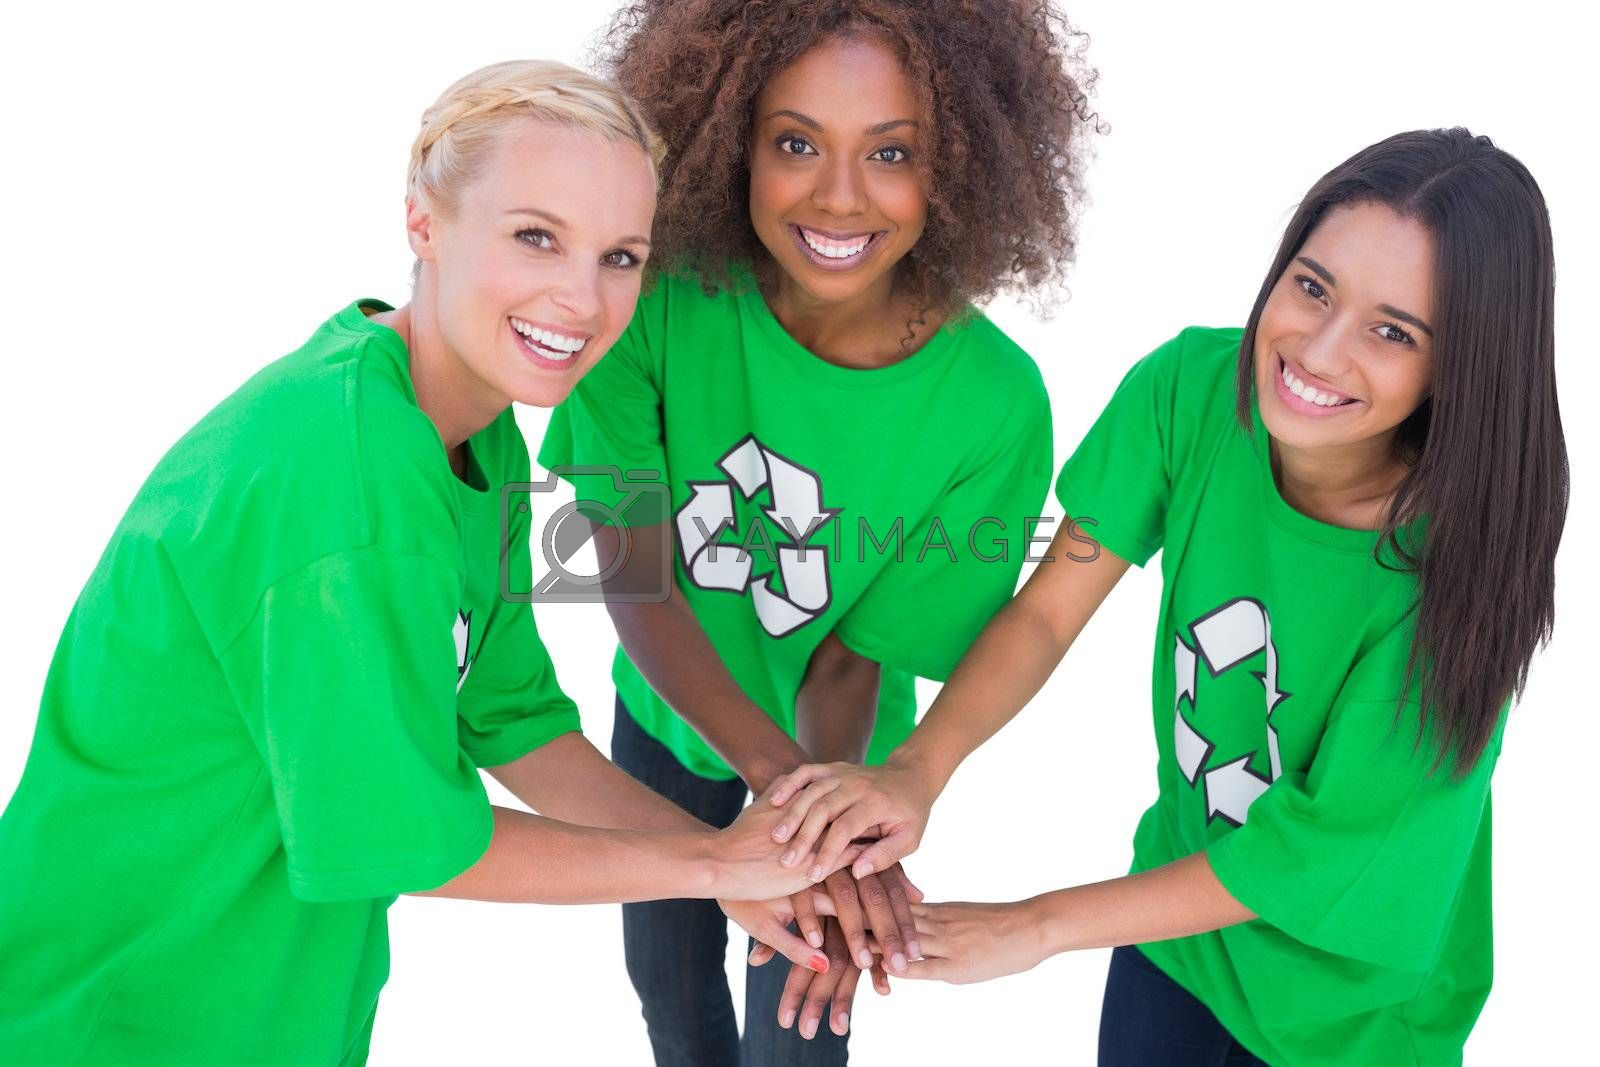 Three enviromental activists putting their hands together and smiling on white background